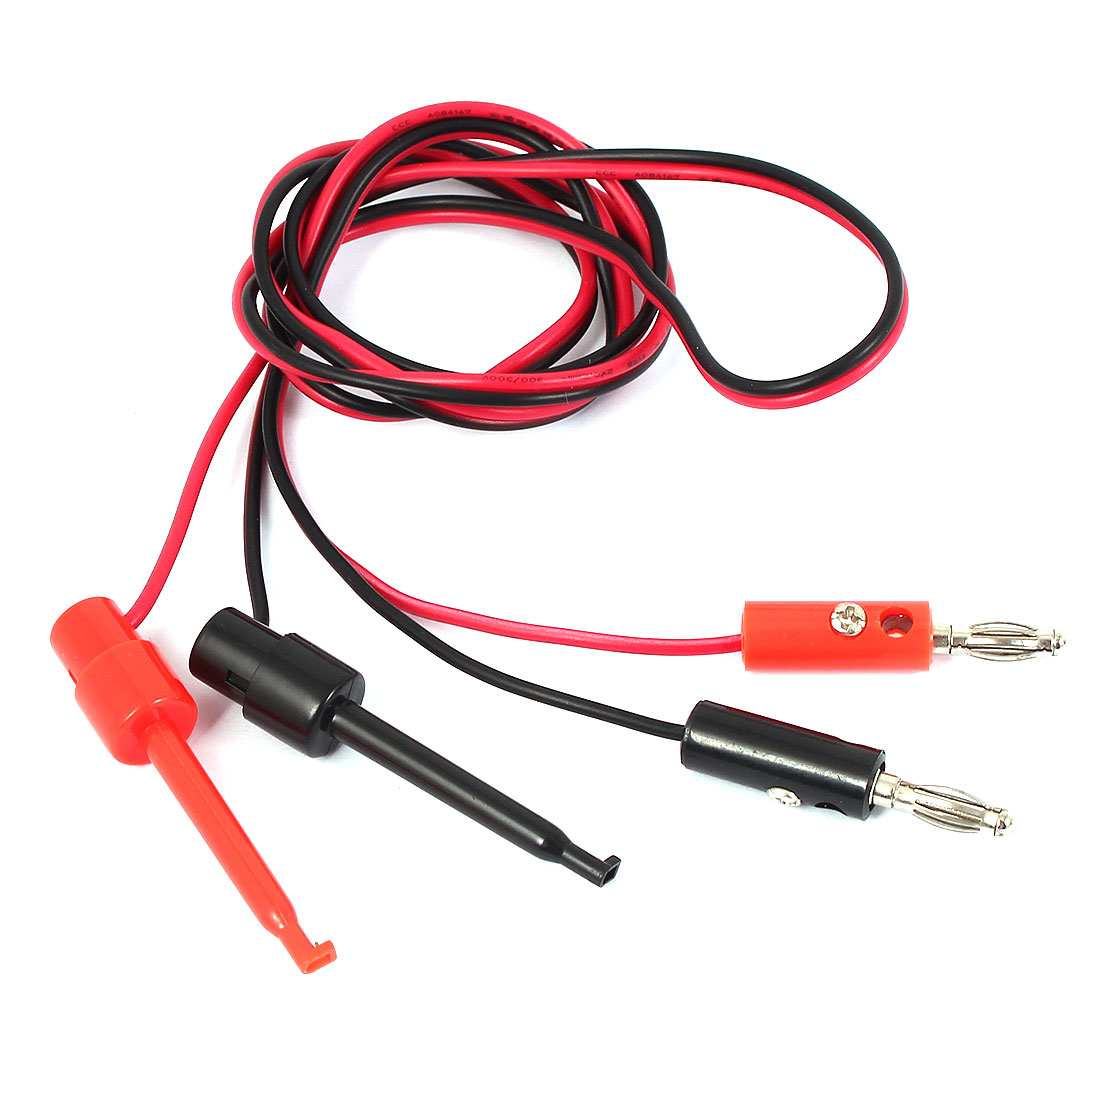 Multimeter Banana Male to Test Hook Clip Probe Cable Red Black 1M Length